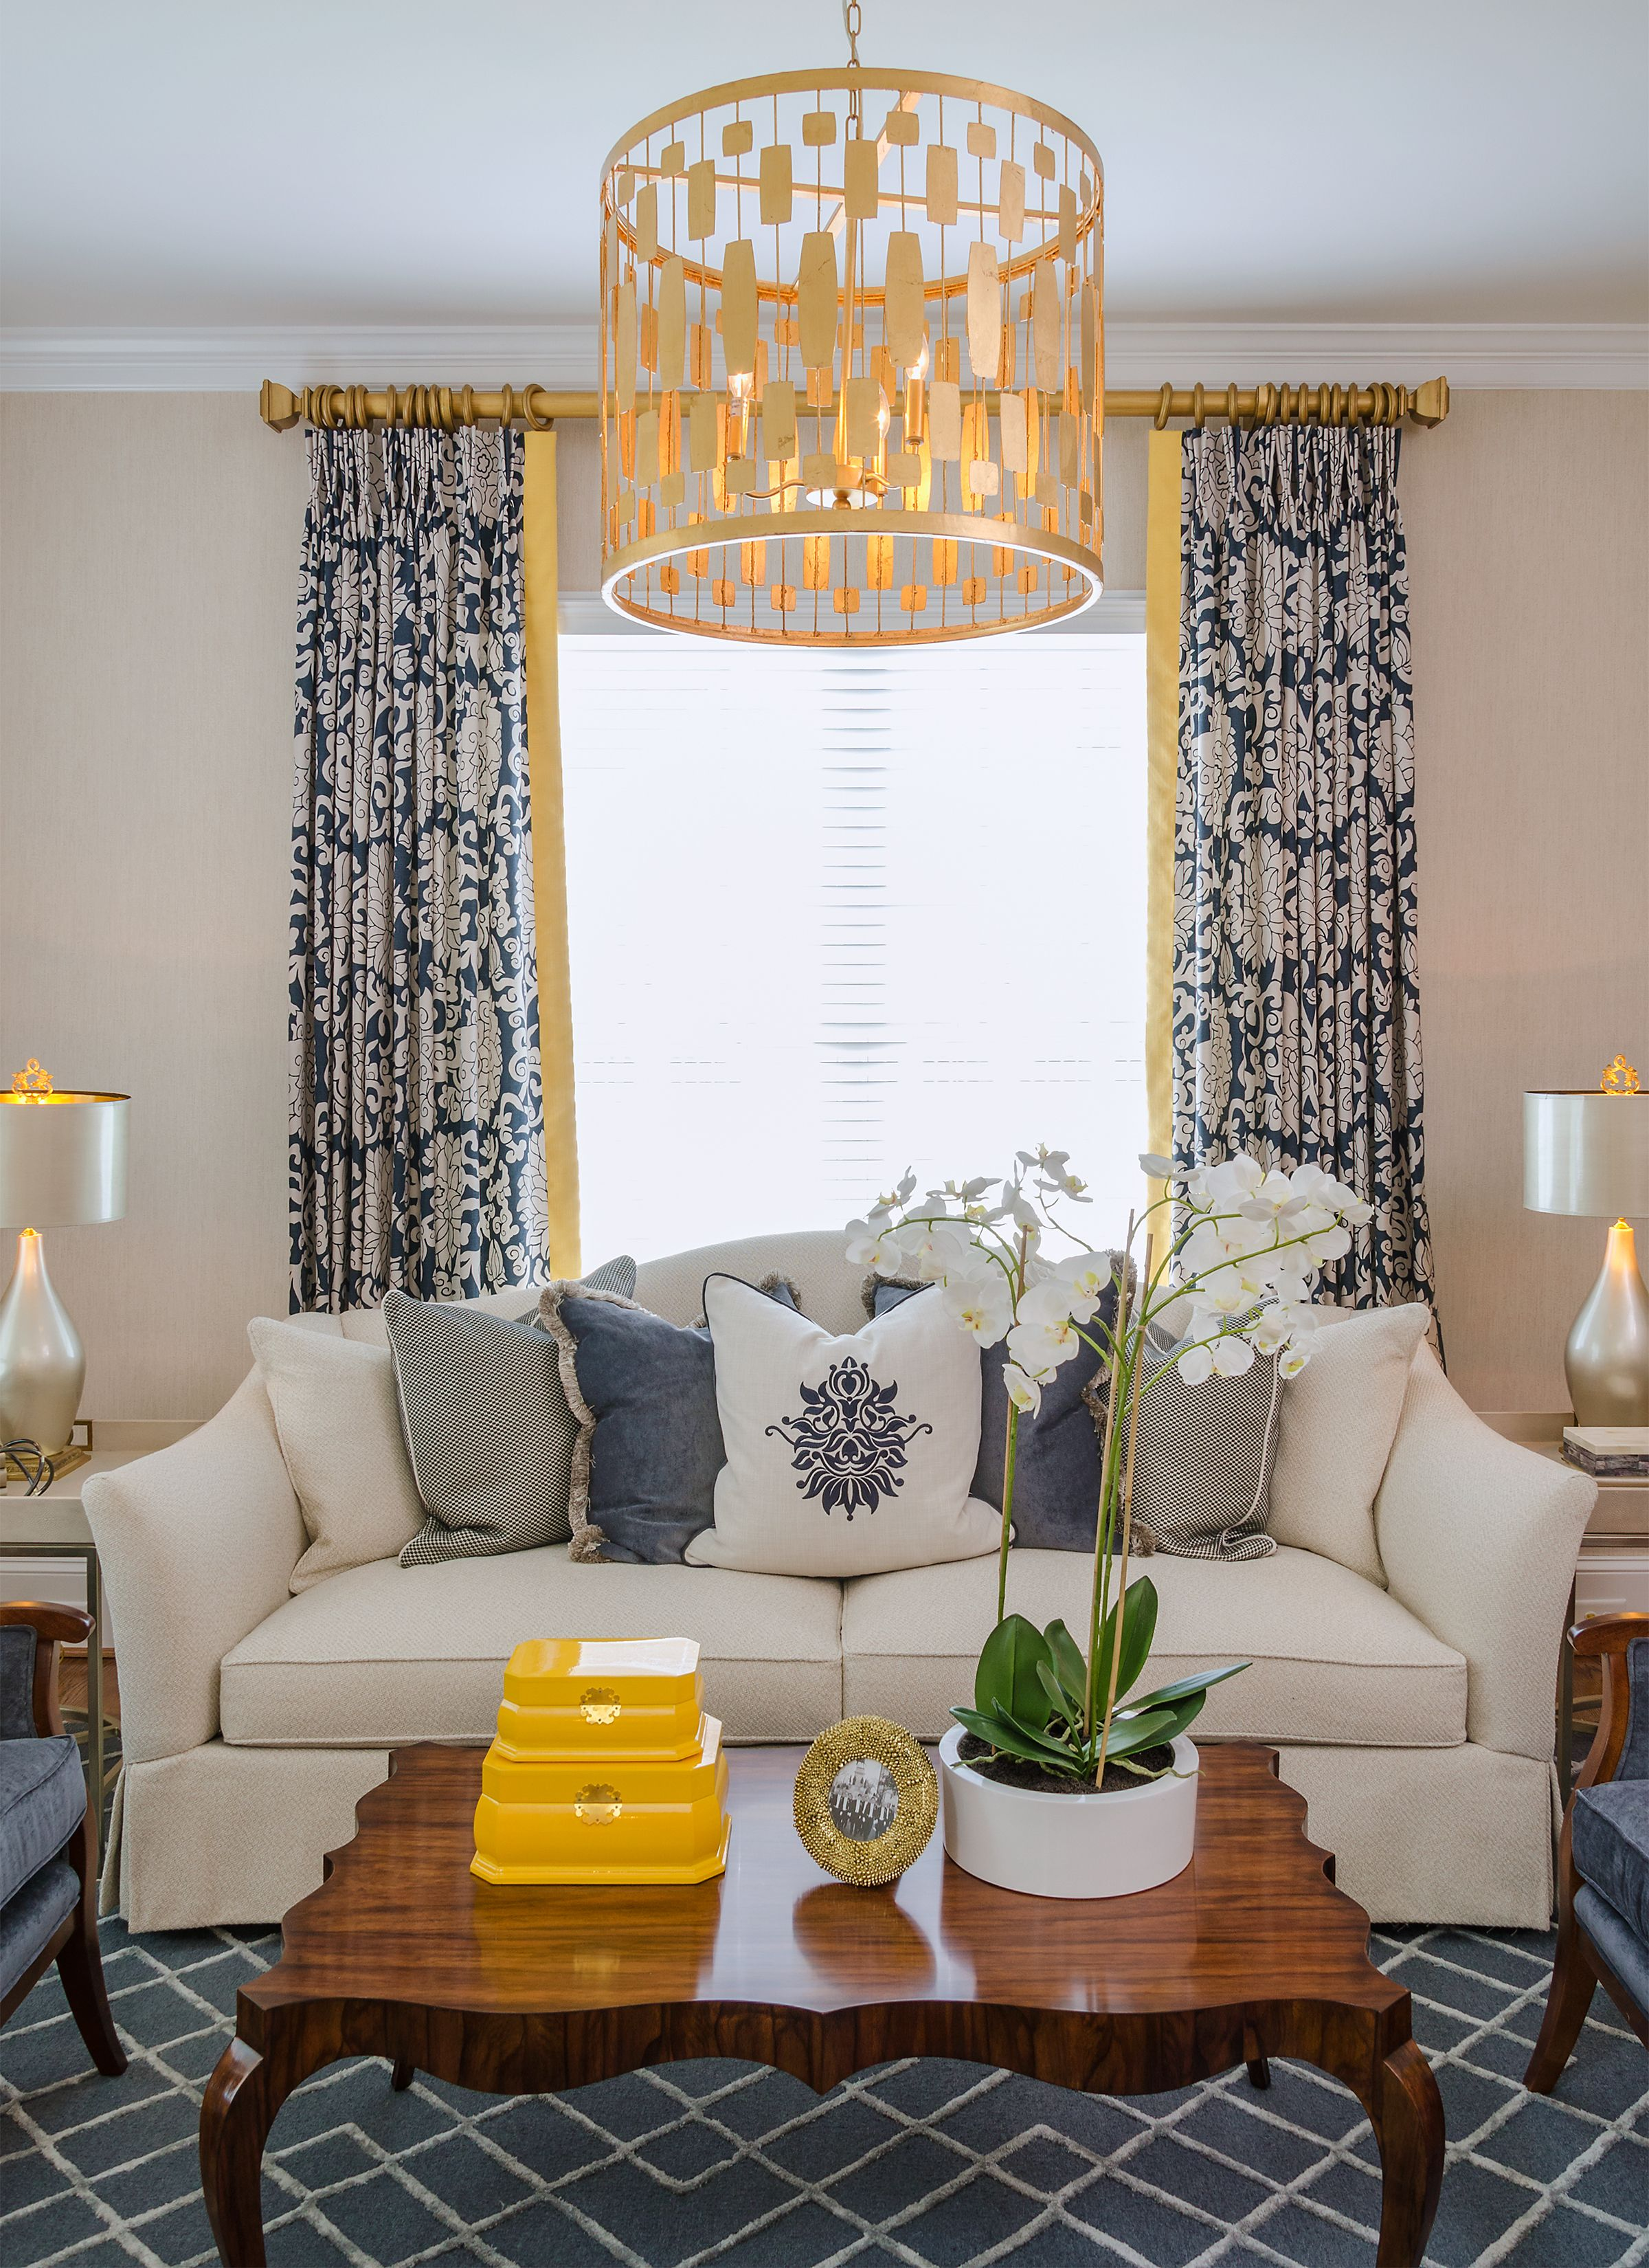 99 Beautiful White And Grey Living Room Interior: Beautiful Yellow Pop Of Color, Living Room, Gold Drum